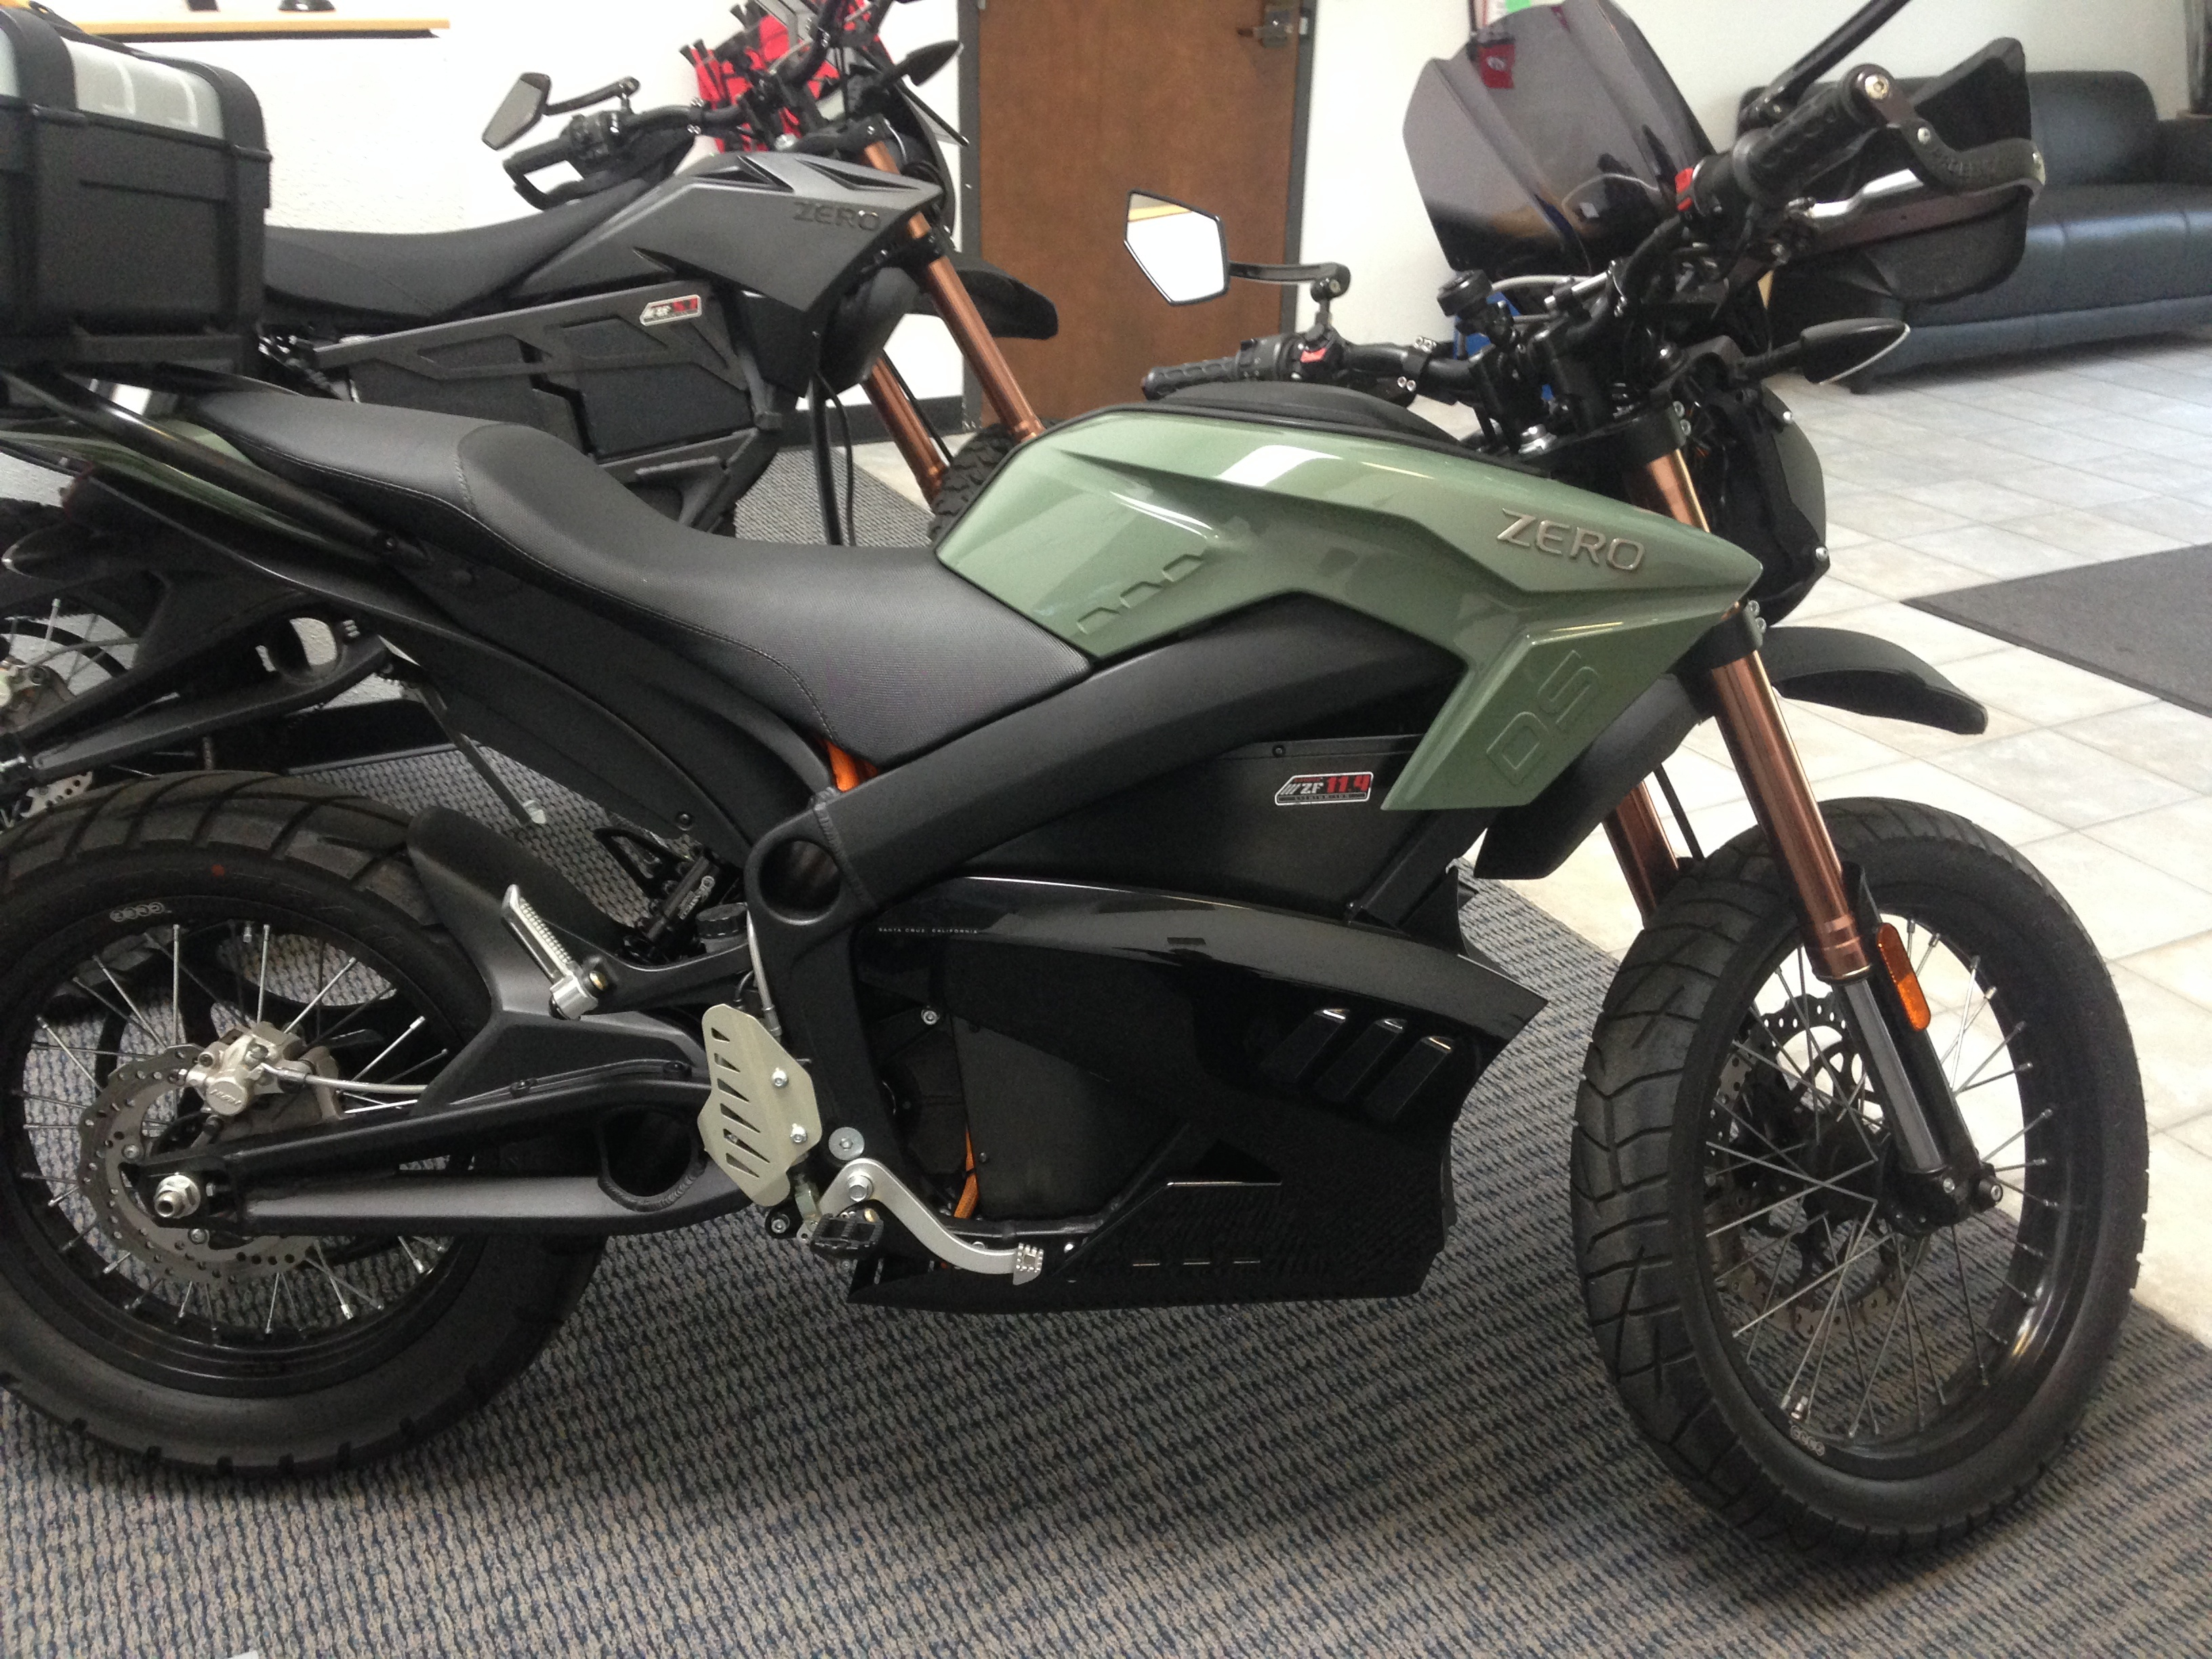 Zero - Electric motorcycle